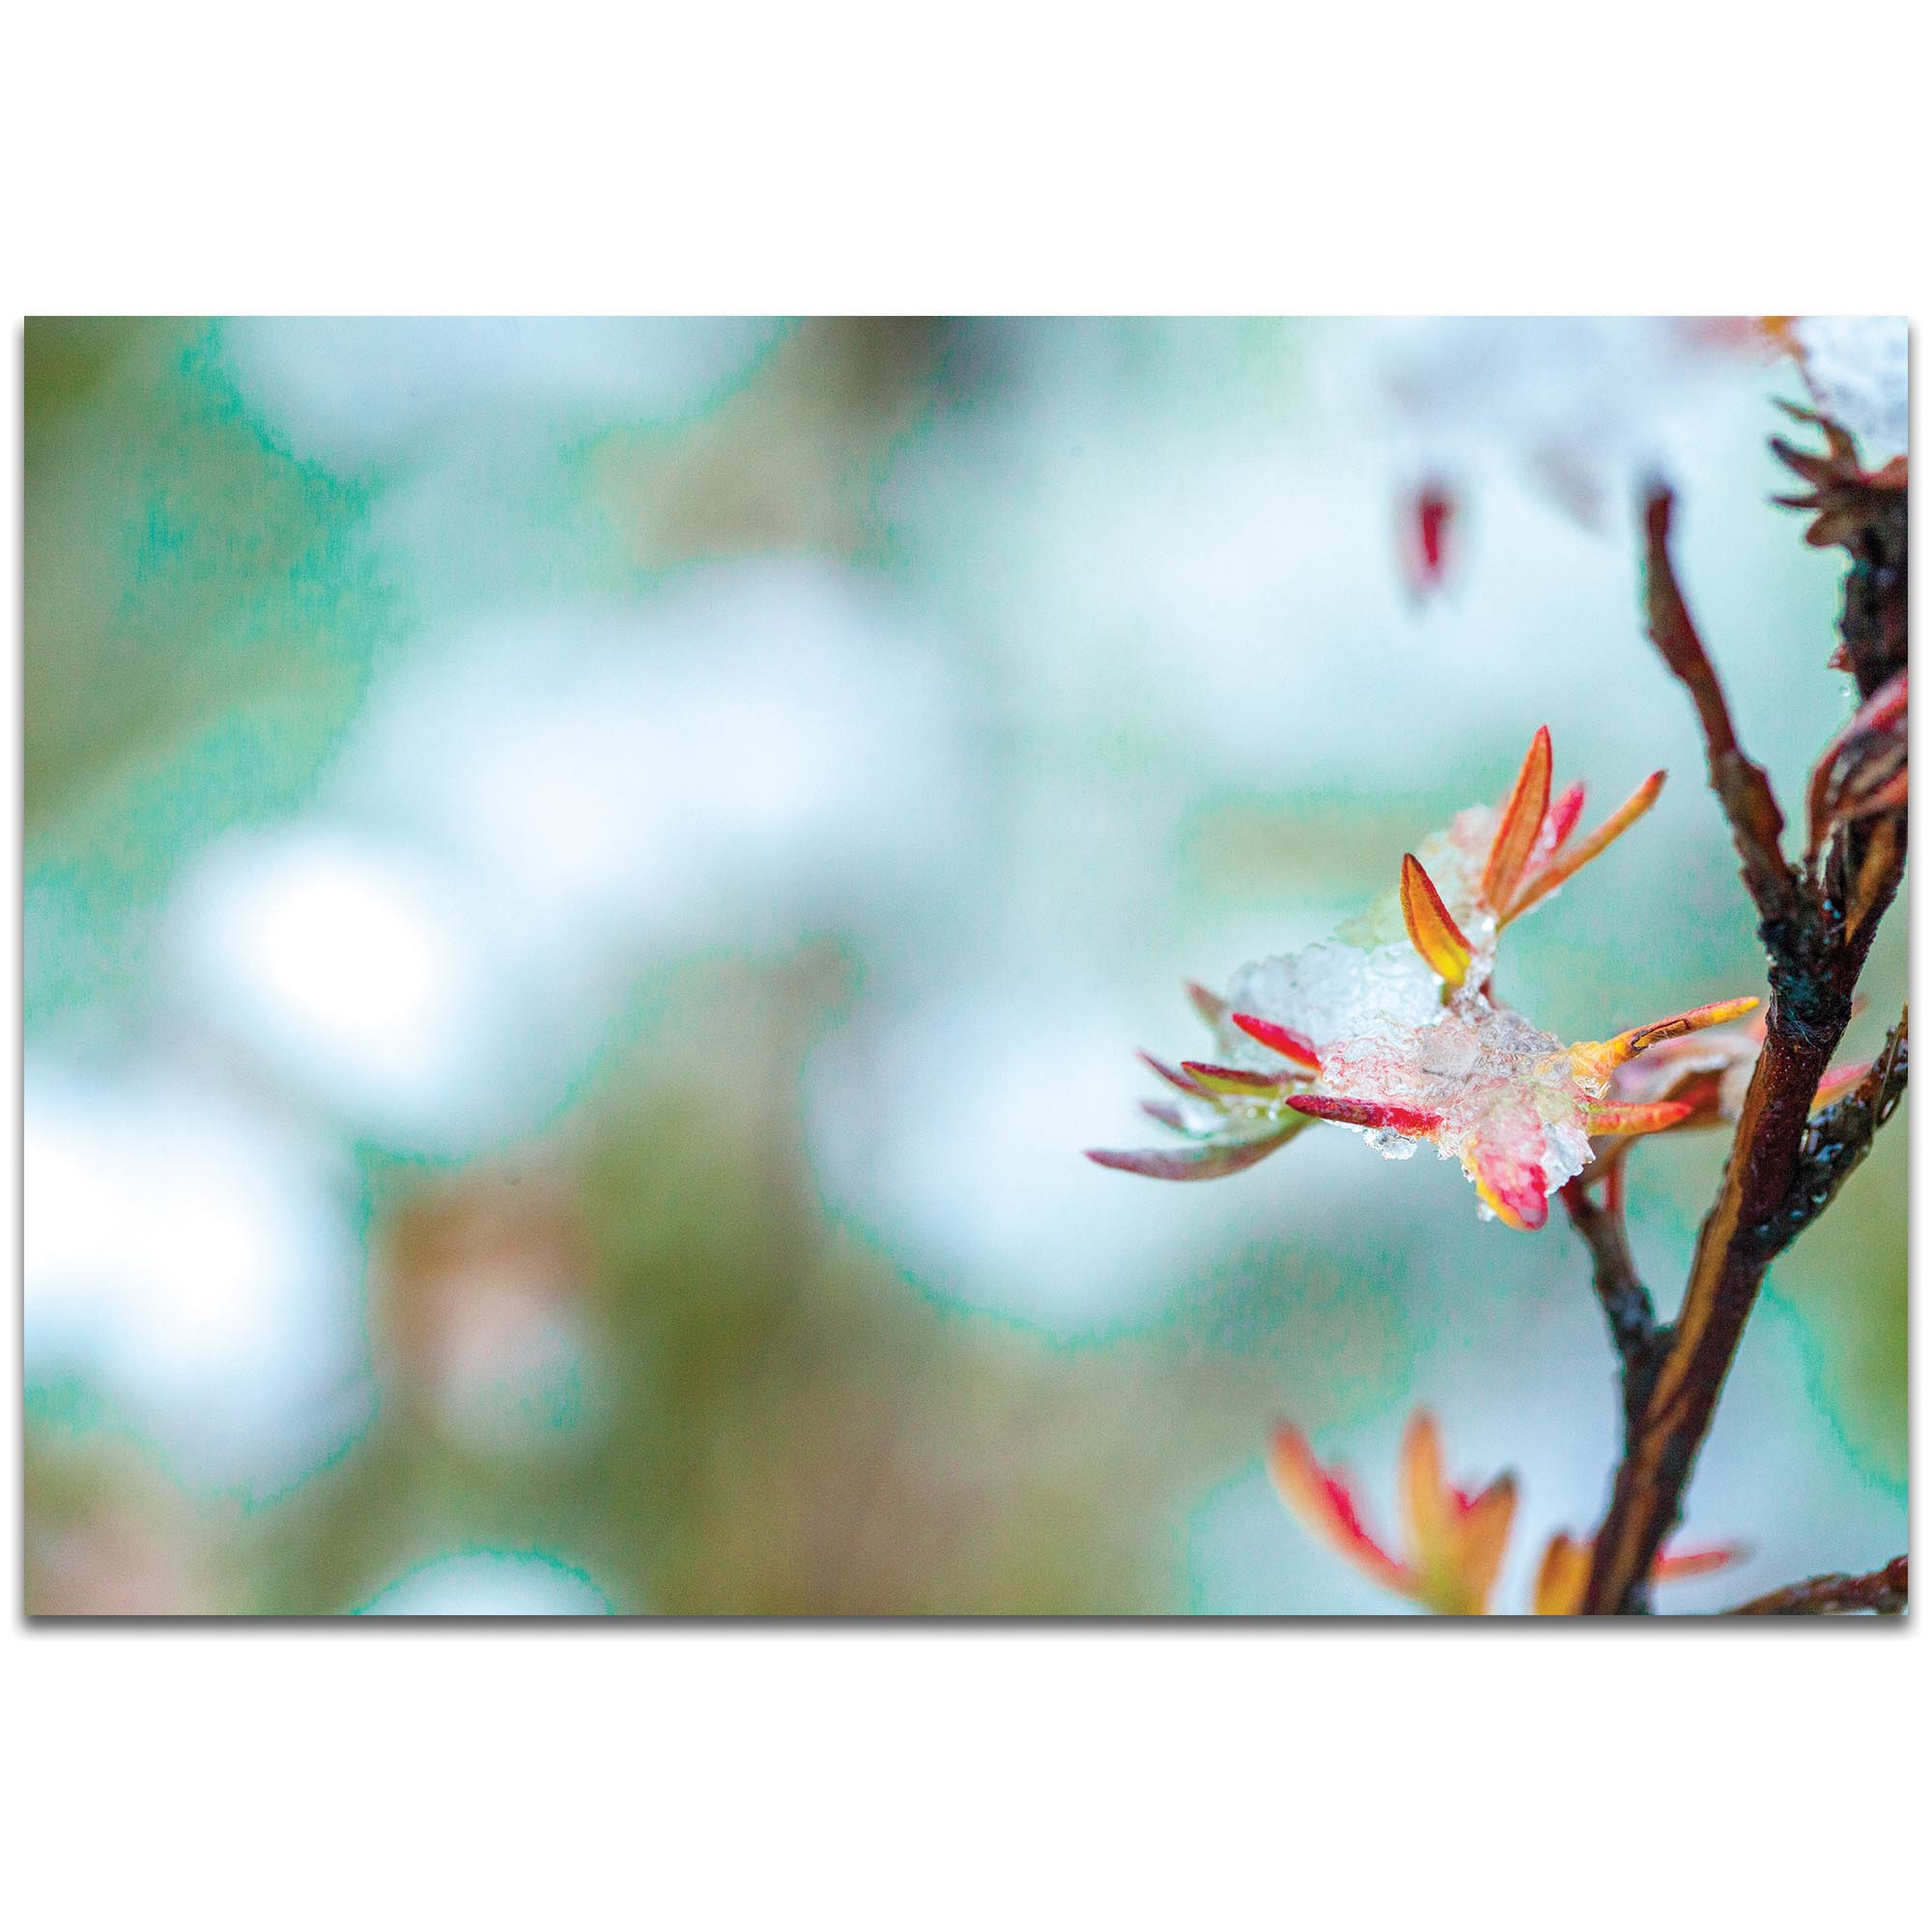 Nature Photography 'Icy Autumn v2' - Winter Blossom Art on Metal or Plexiglass